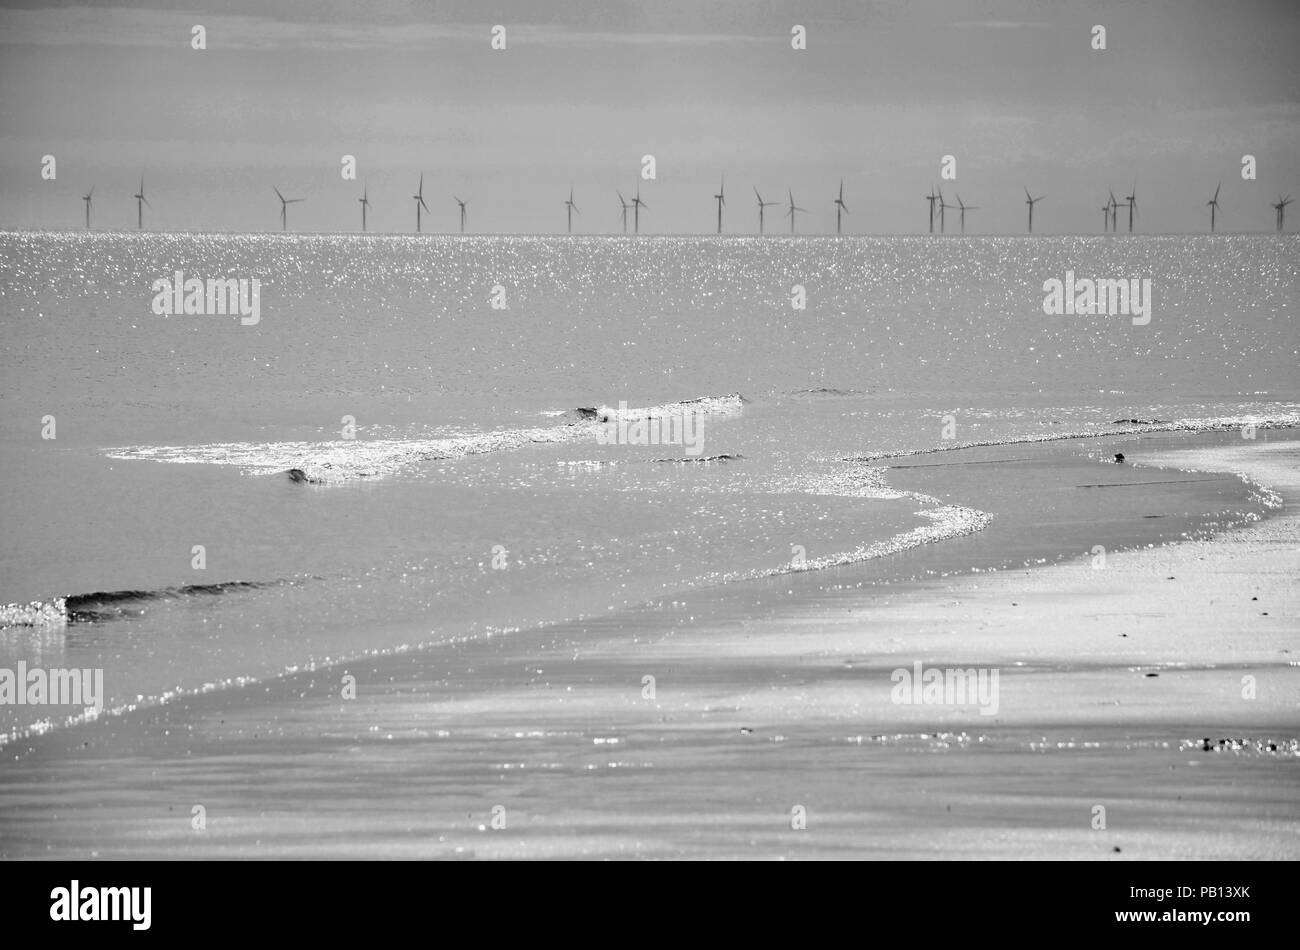 Monochrome. Shoreline with wind turbines in distance, Lincolnshire coast, England, UK - Stock Image